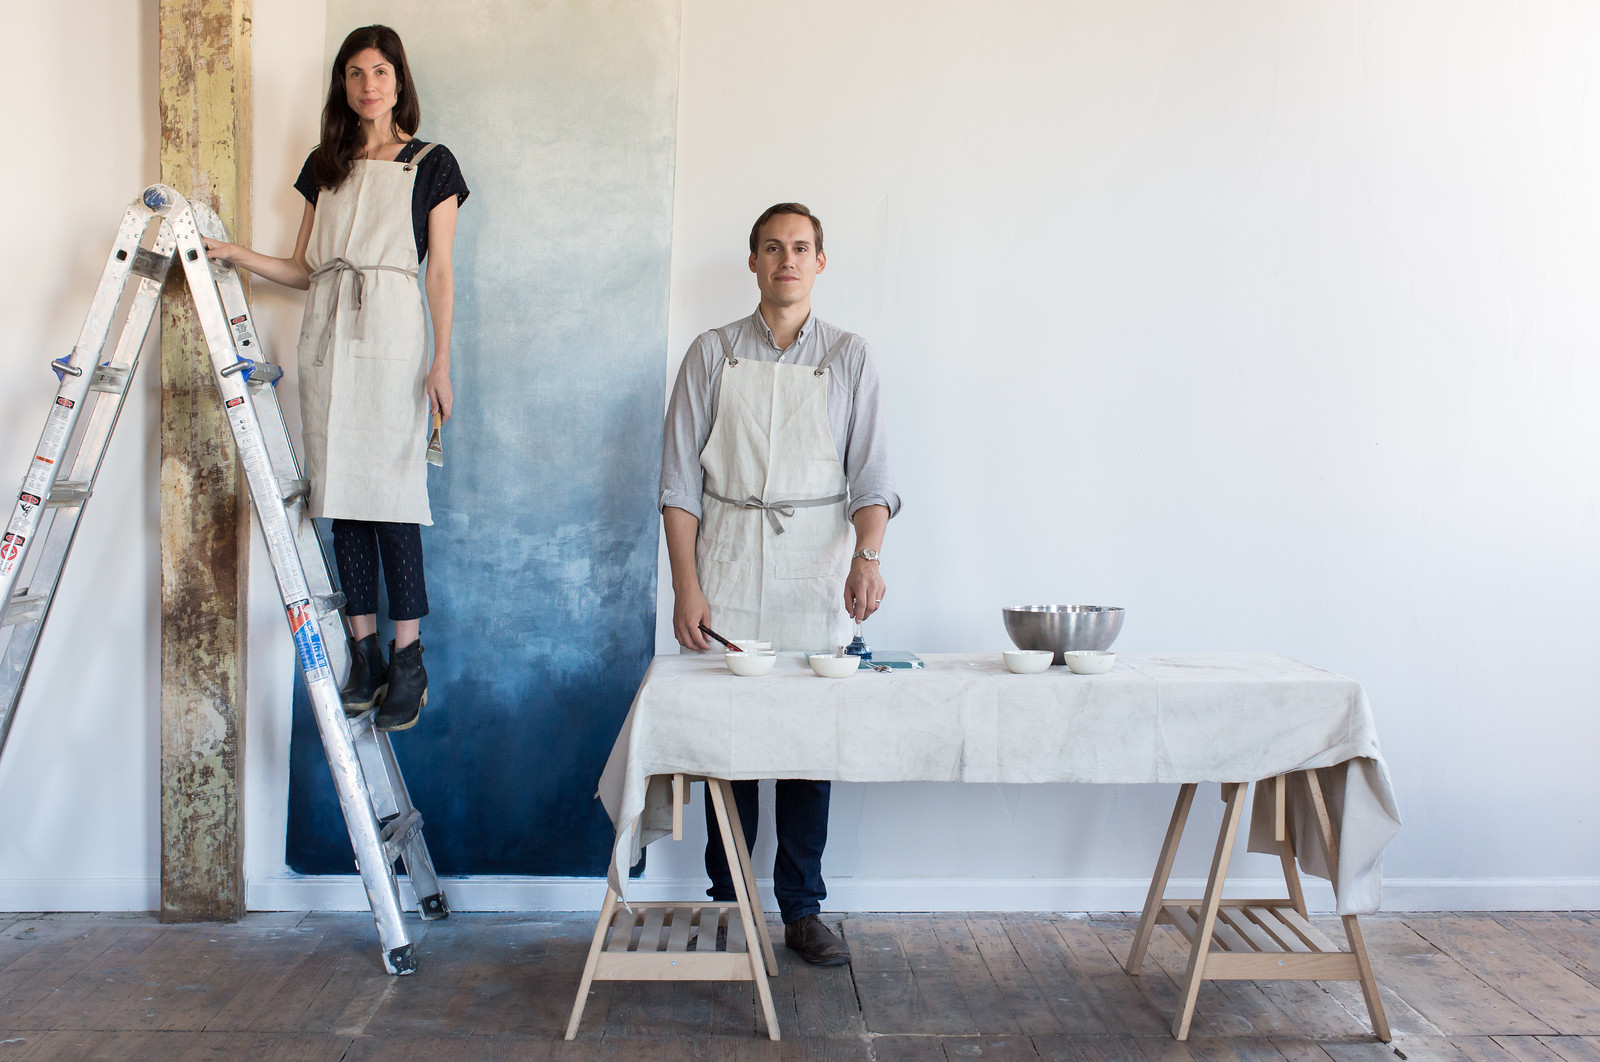 A little teaser of what the  Fragments wallcovering will possibly look like - graduating through dark grey to natural linen from the floor to the ceiling. Rachell and Nicholas try on their linen aprons for the camera.